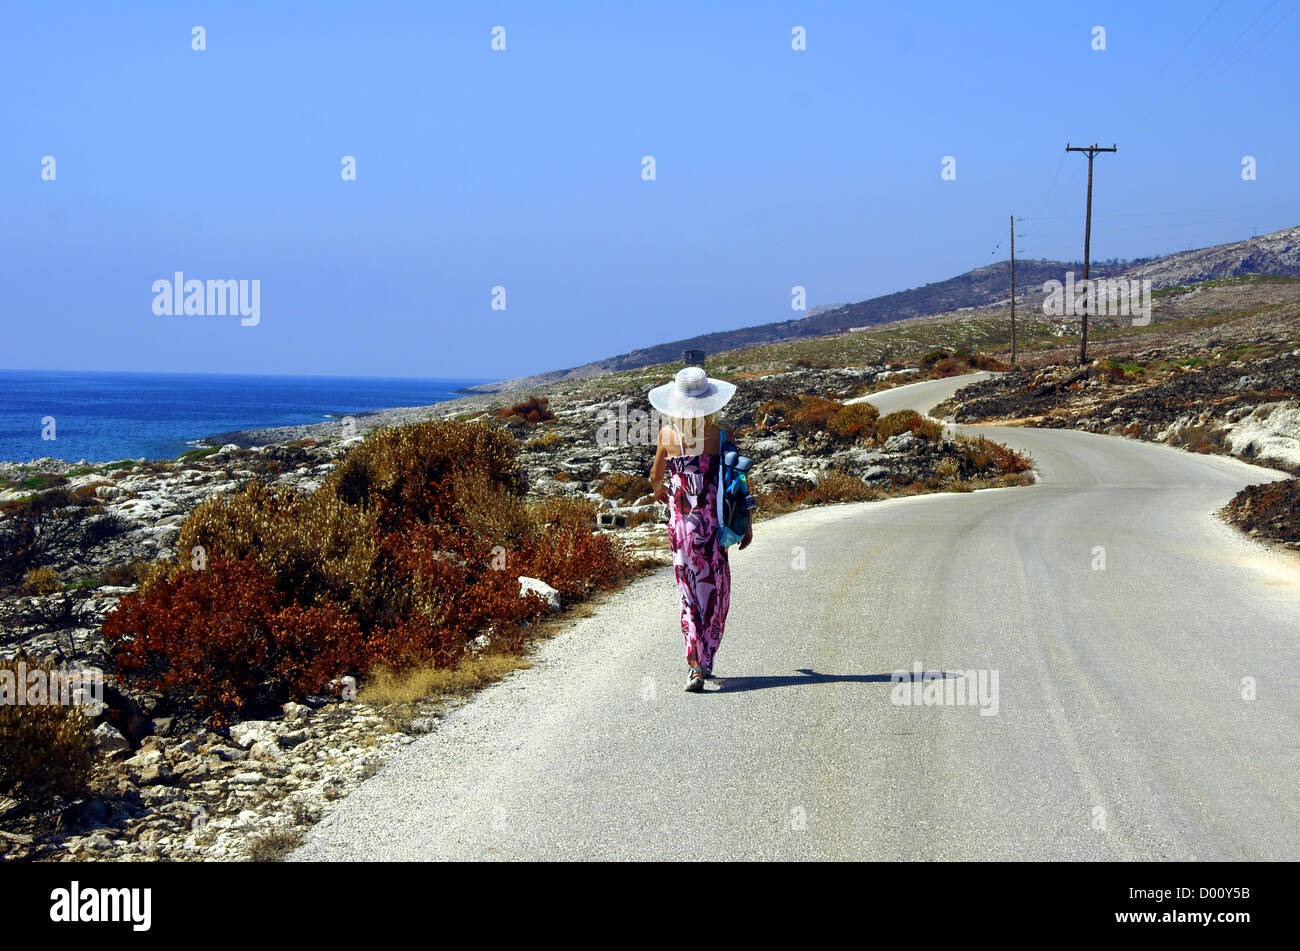 girl walking on seaboard, Zakynthos island, Greece - Stock Image